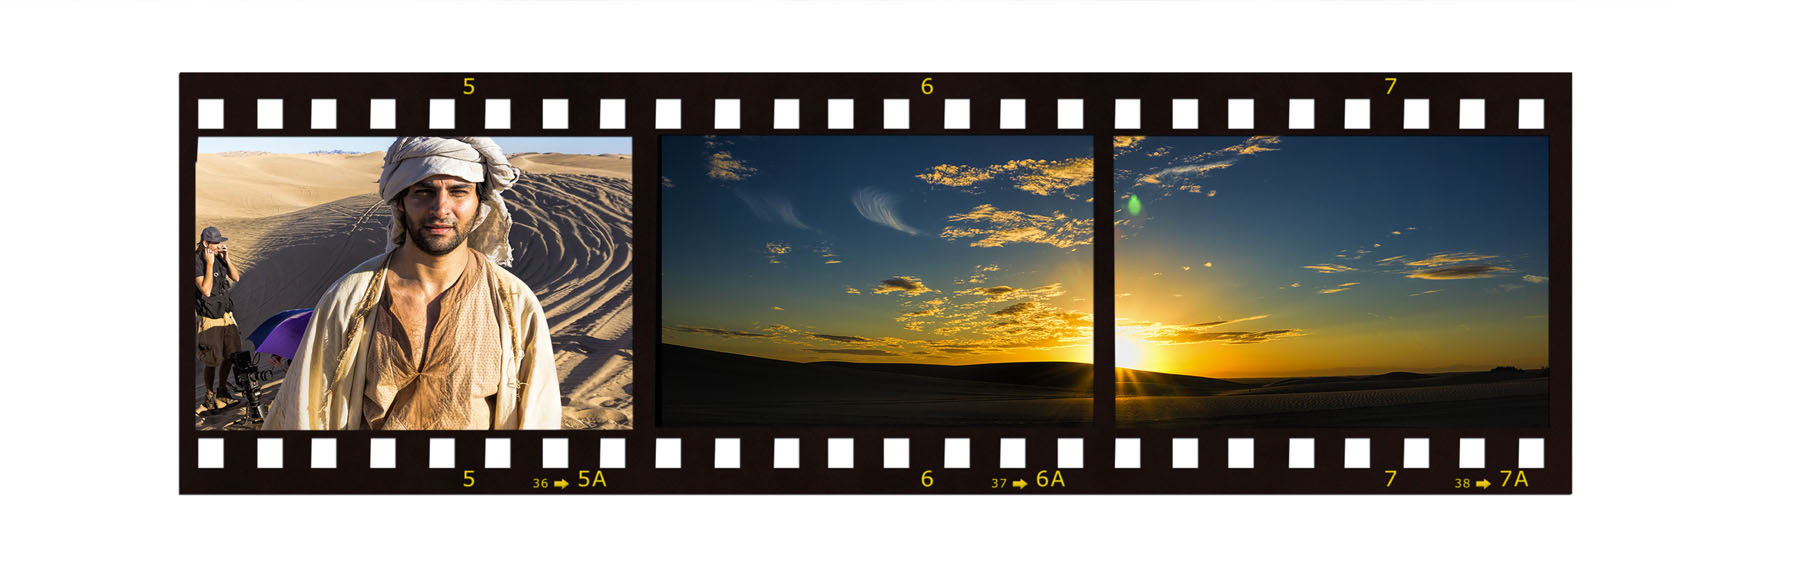 film_strip Desrt2